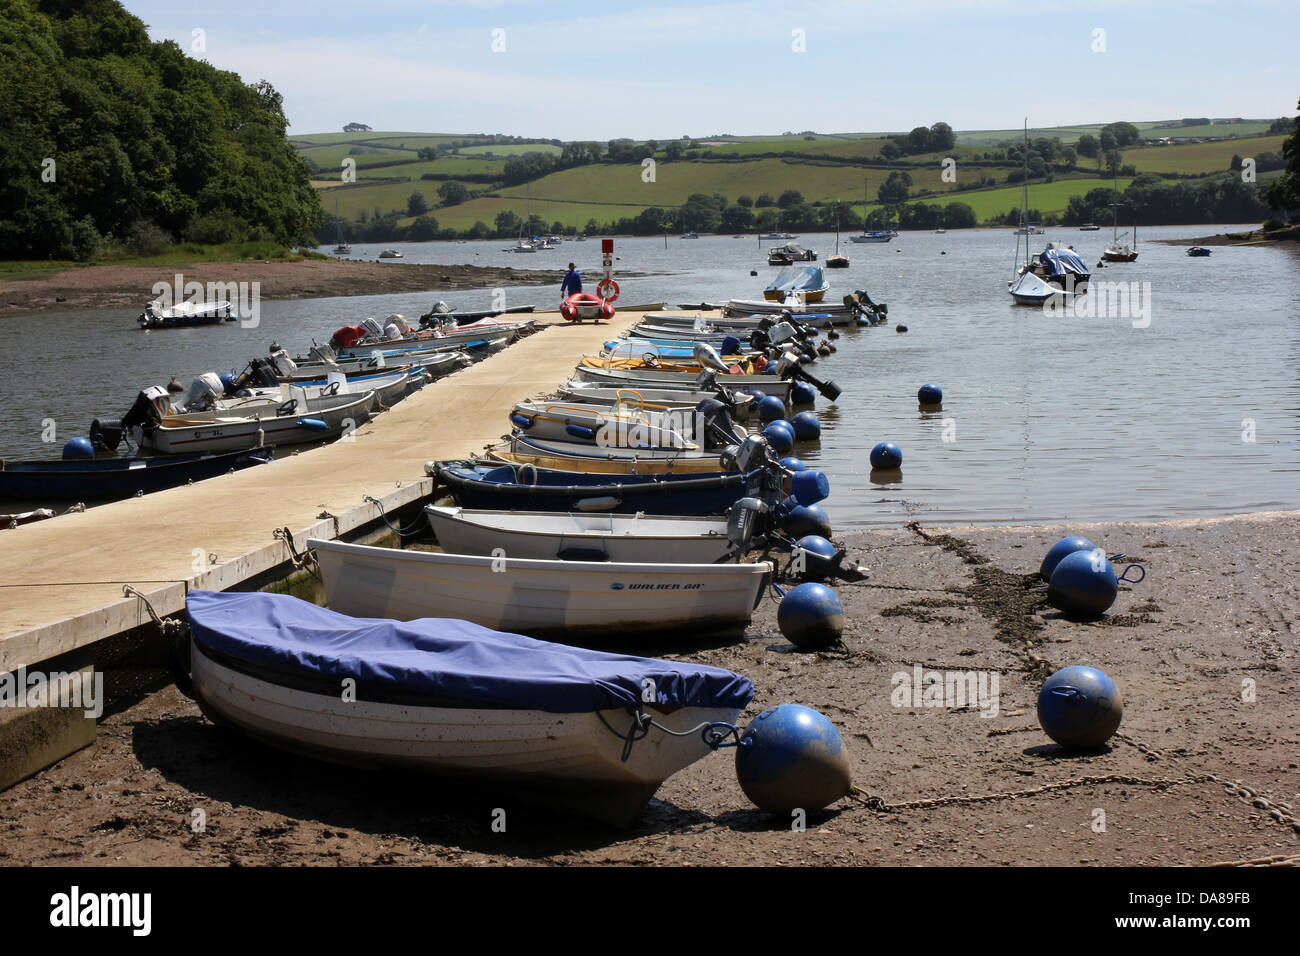 Stoke Gabriel Devon,river Dart,launching boat,defra,the environment, rural development, the countryside, wildlife, - Stock Image